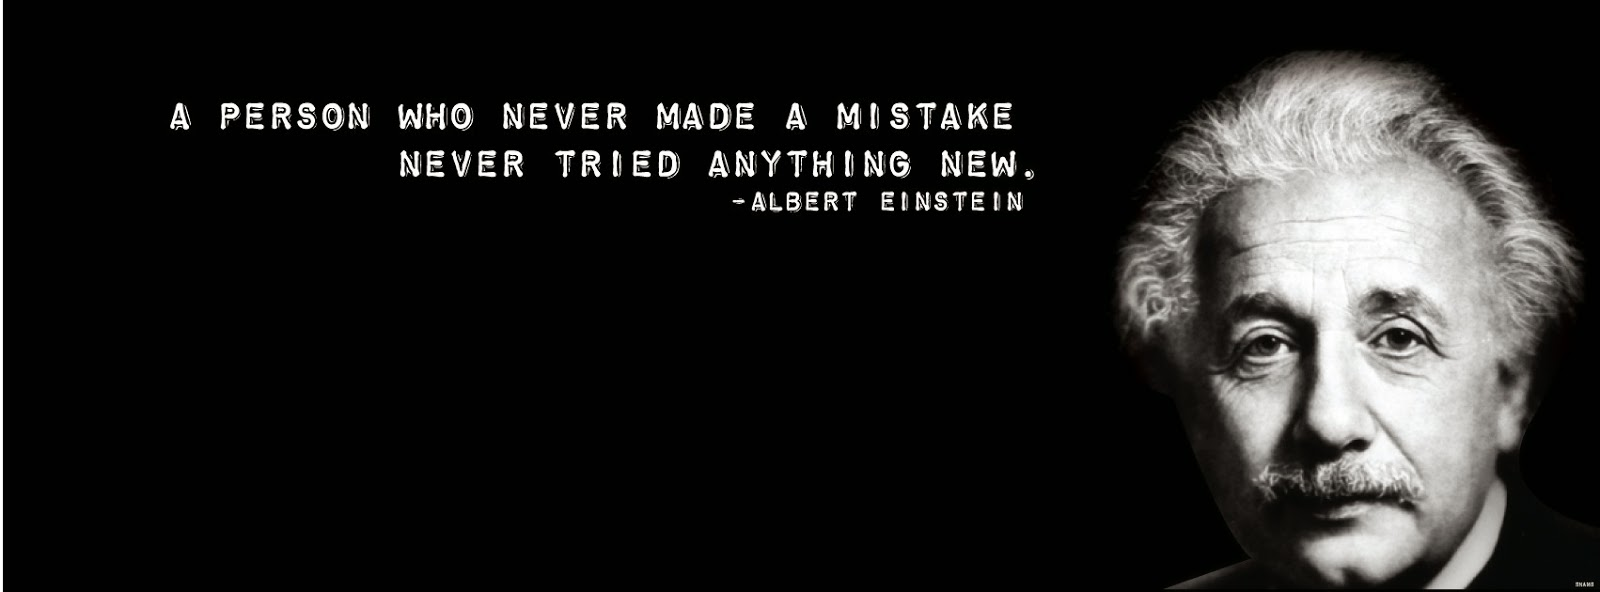 Bytes  Quote for the Day  Albert Einstein Quote for the Day  Albert Einstein